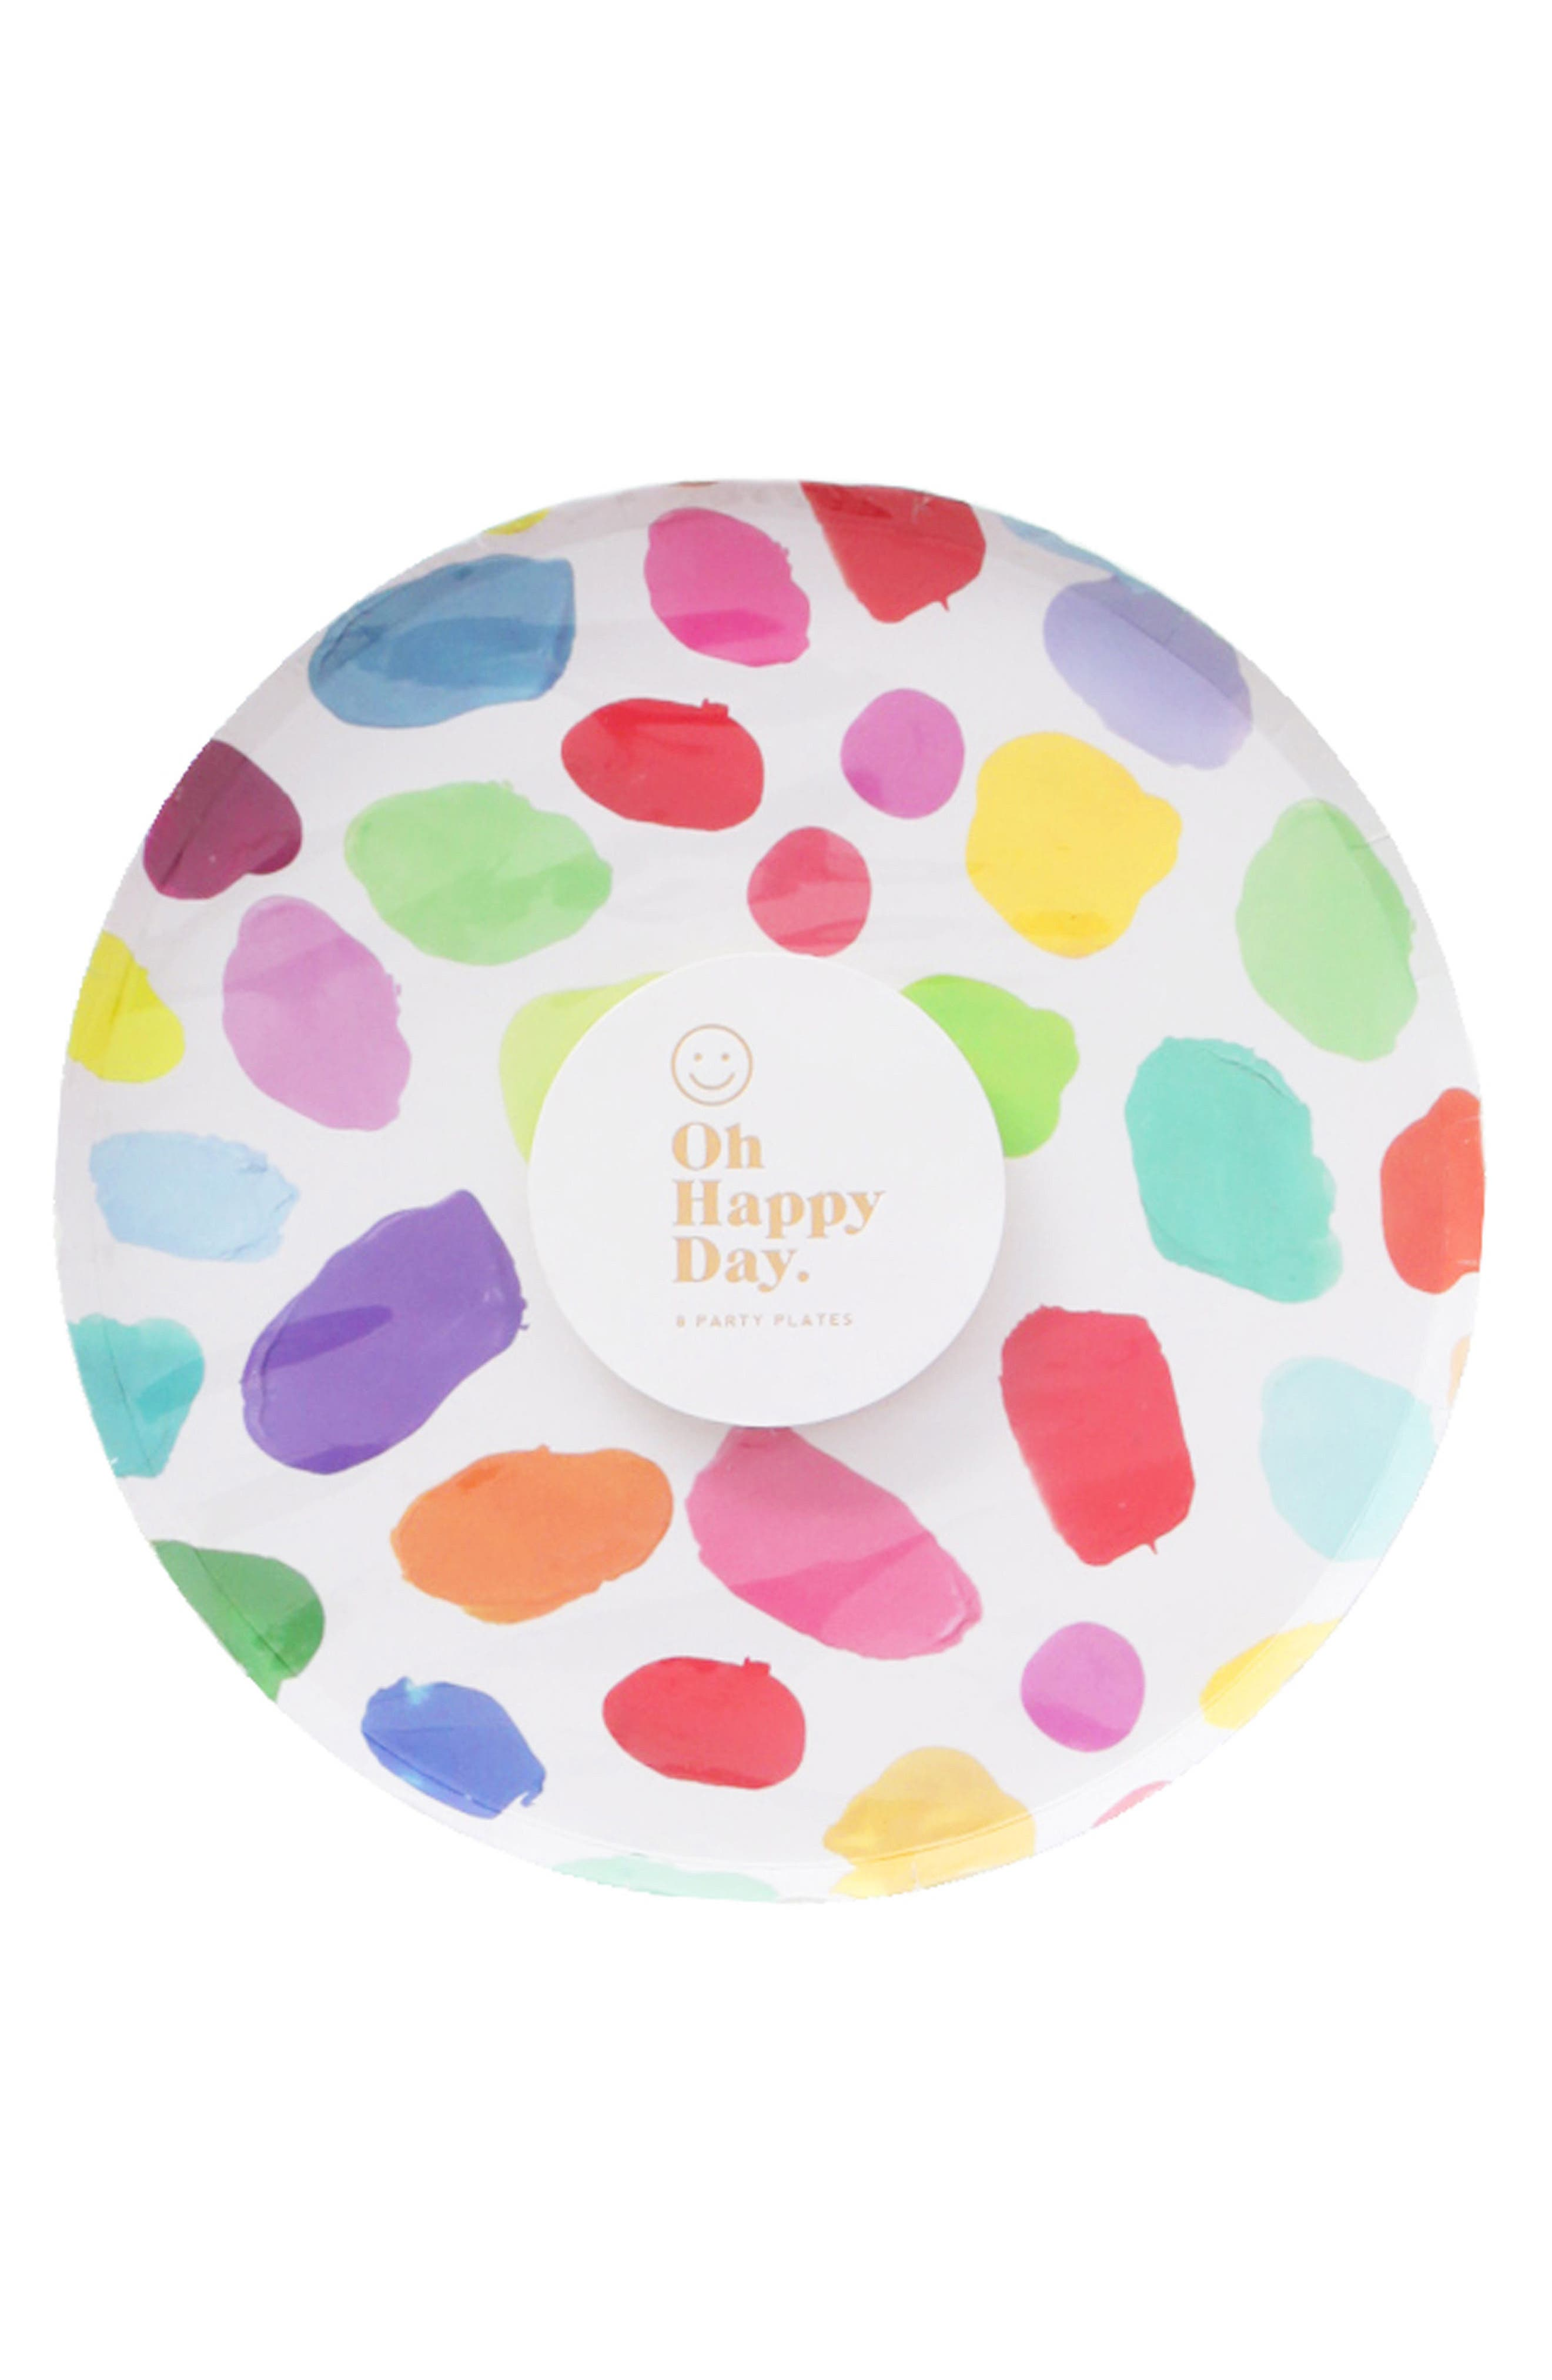 Oh Happy Day Set of 8 Kindah 7-Inch Paper Party Plates